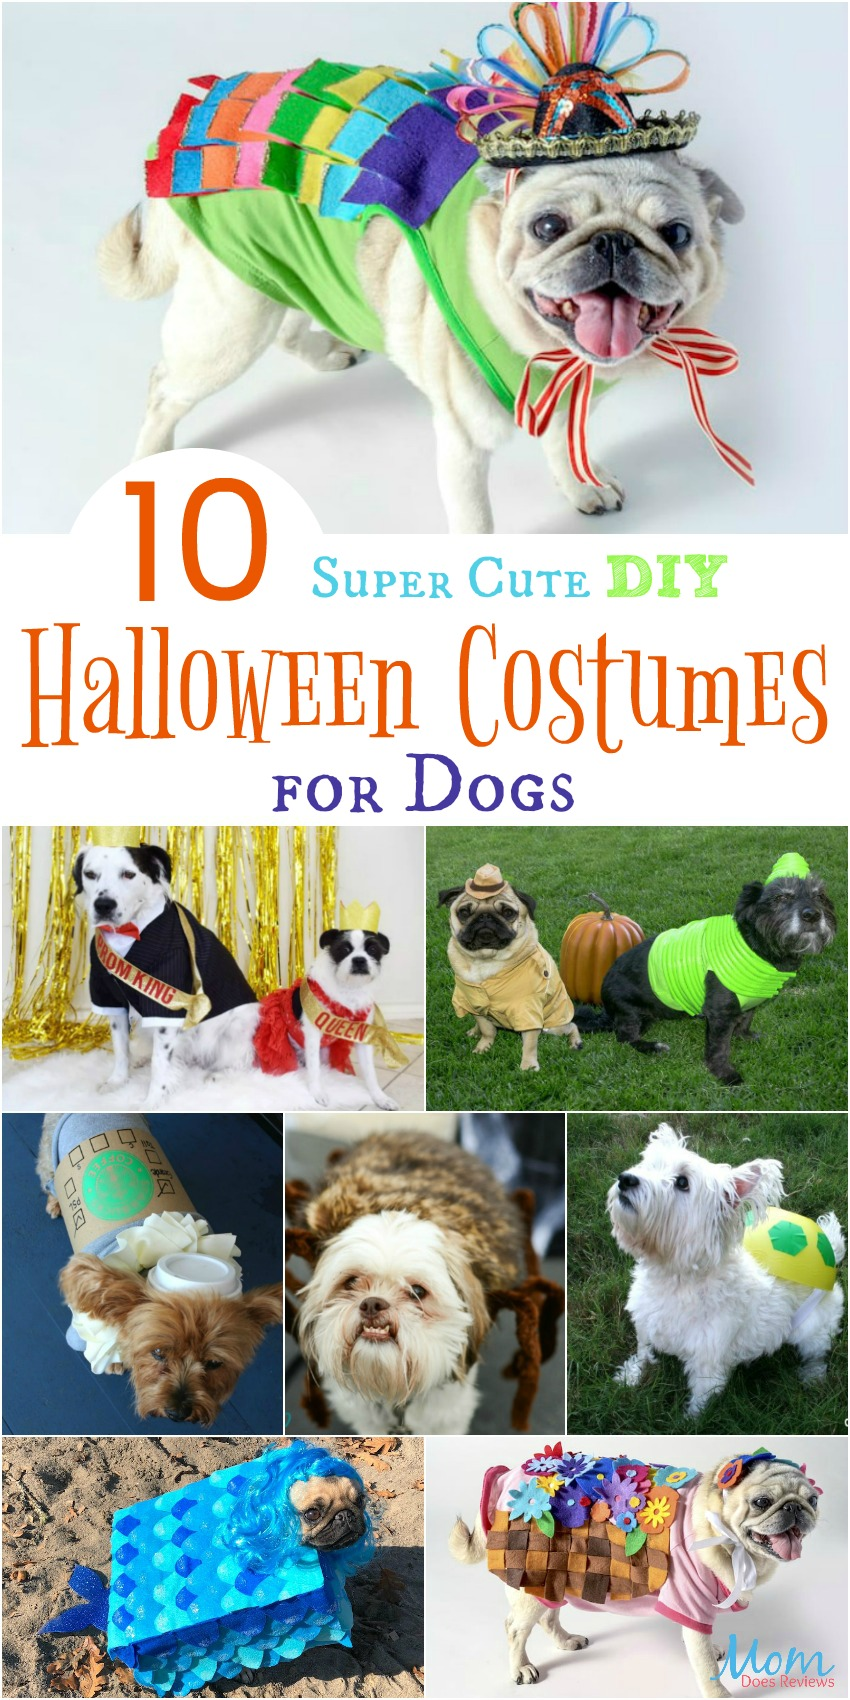 10 Super Cute DIY Halloween Costumes for Dogs #halloween #pets #diy